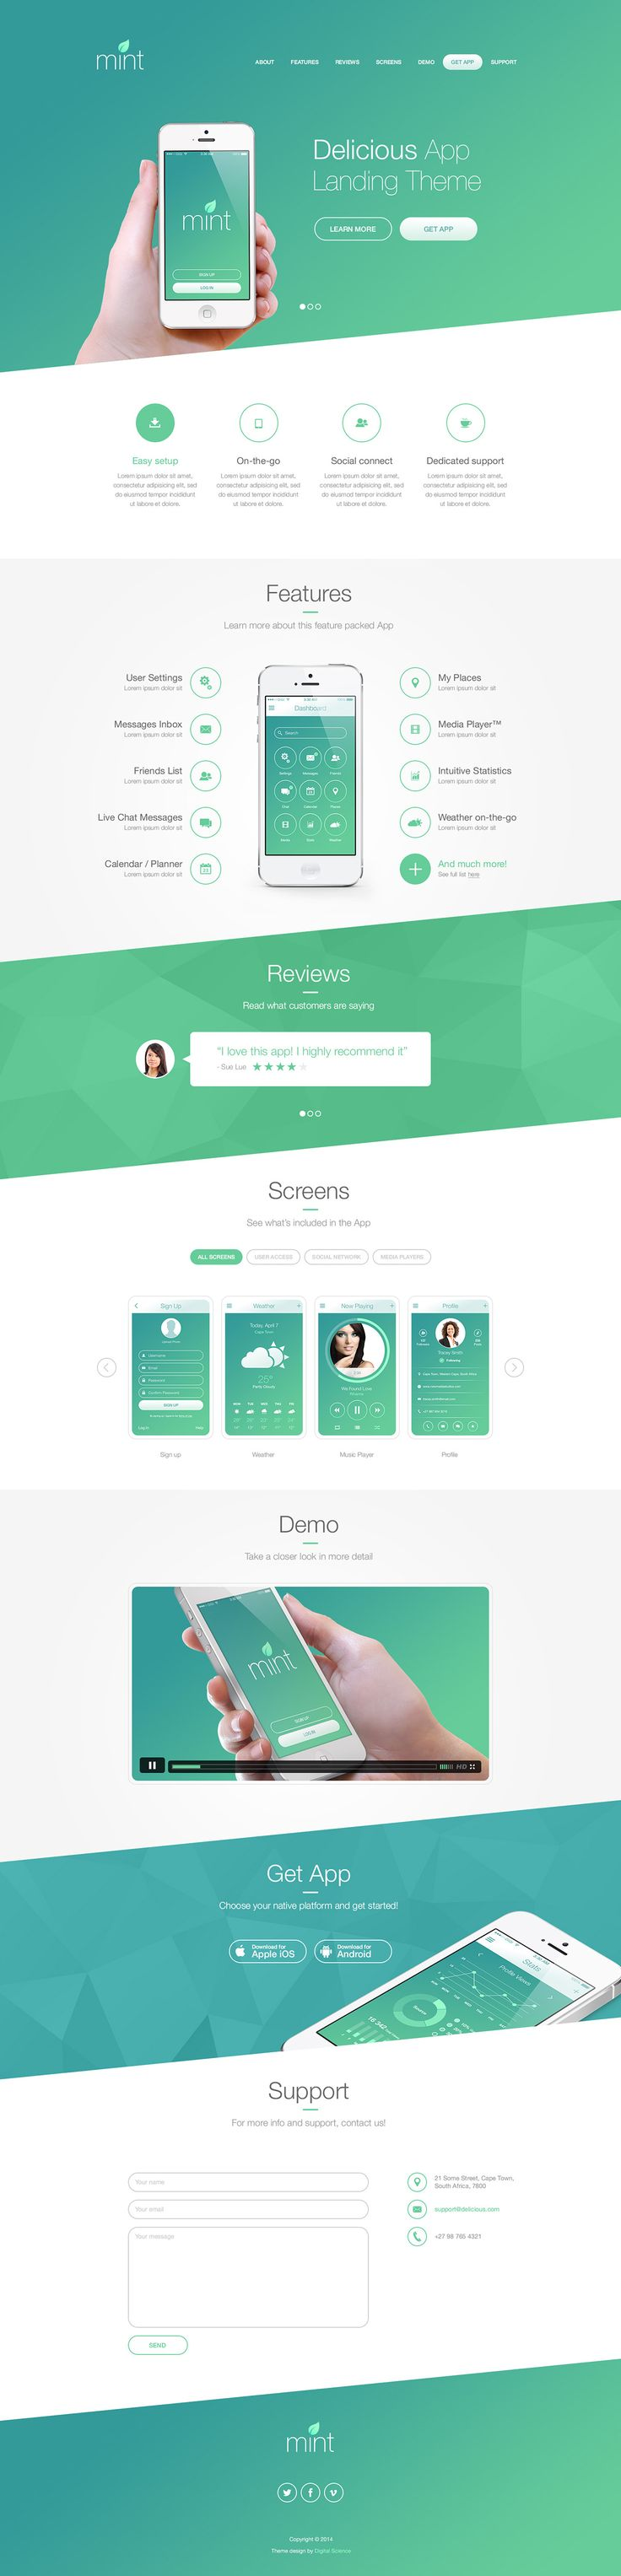 Mobile App Landing Theme design